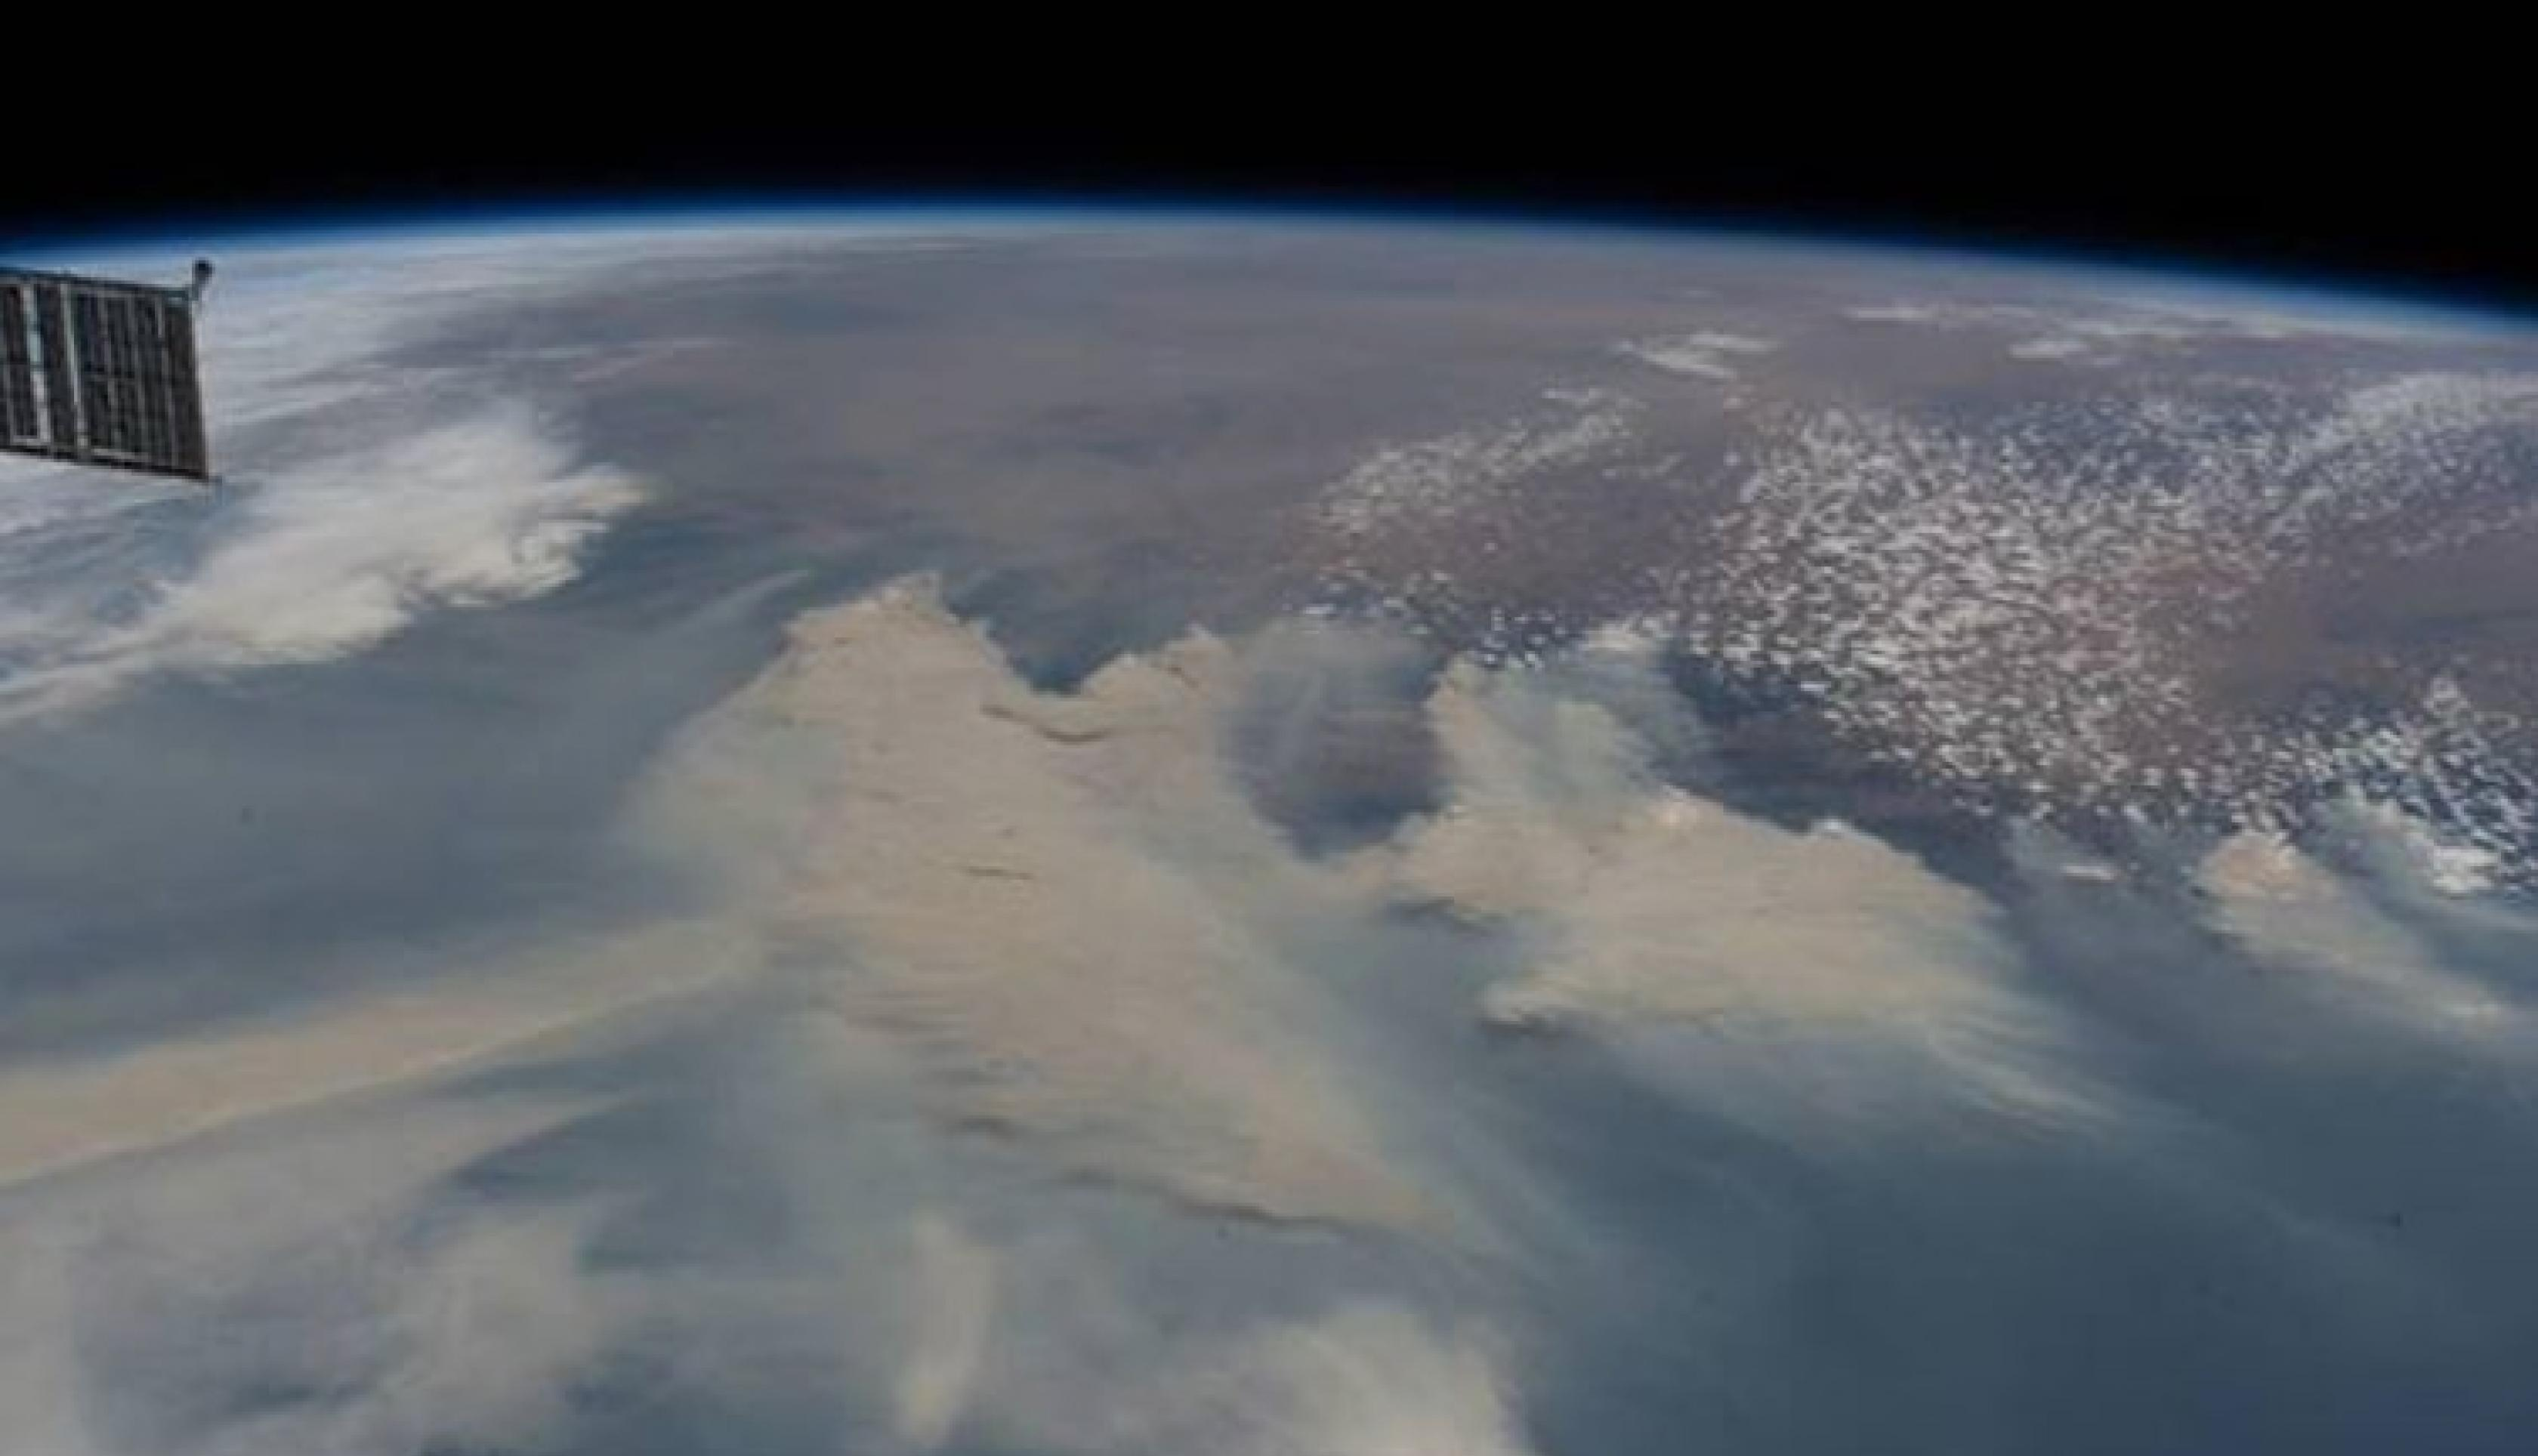 Photograph of smoke rising from fires on the east coast of Australia, taken by ISS astronauts on January 4th, 2020. Credit: NASA Crew Earth Observations (CEO)